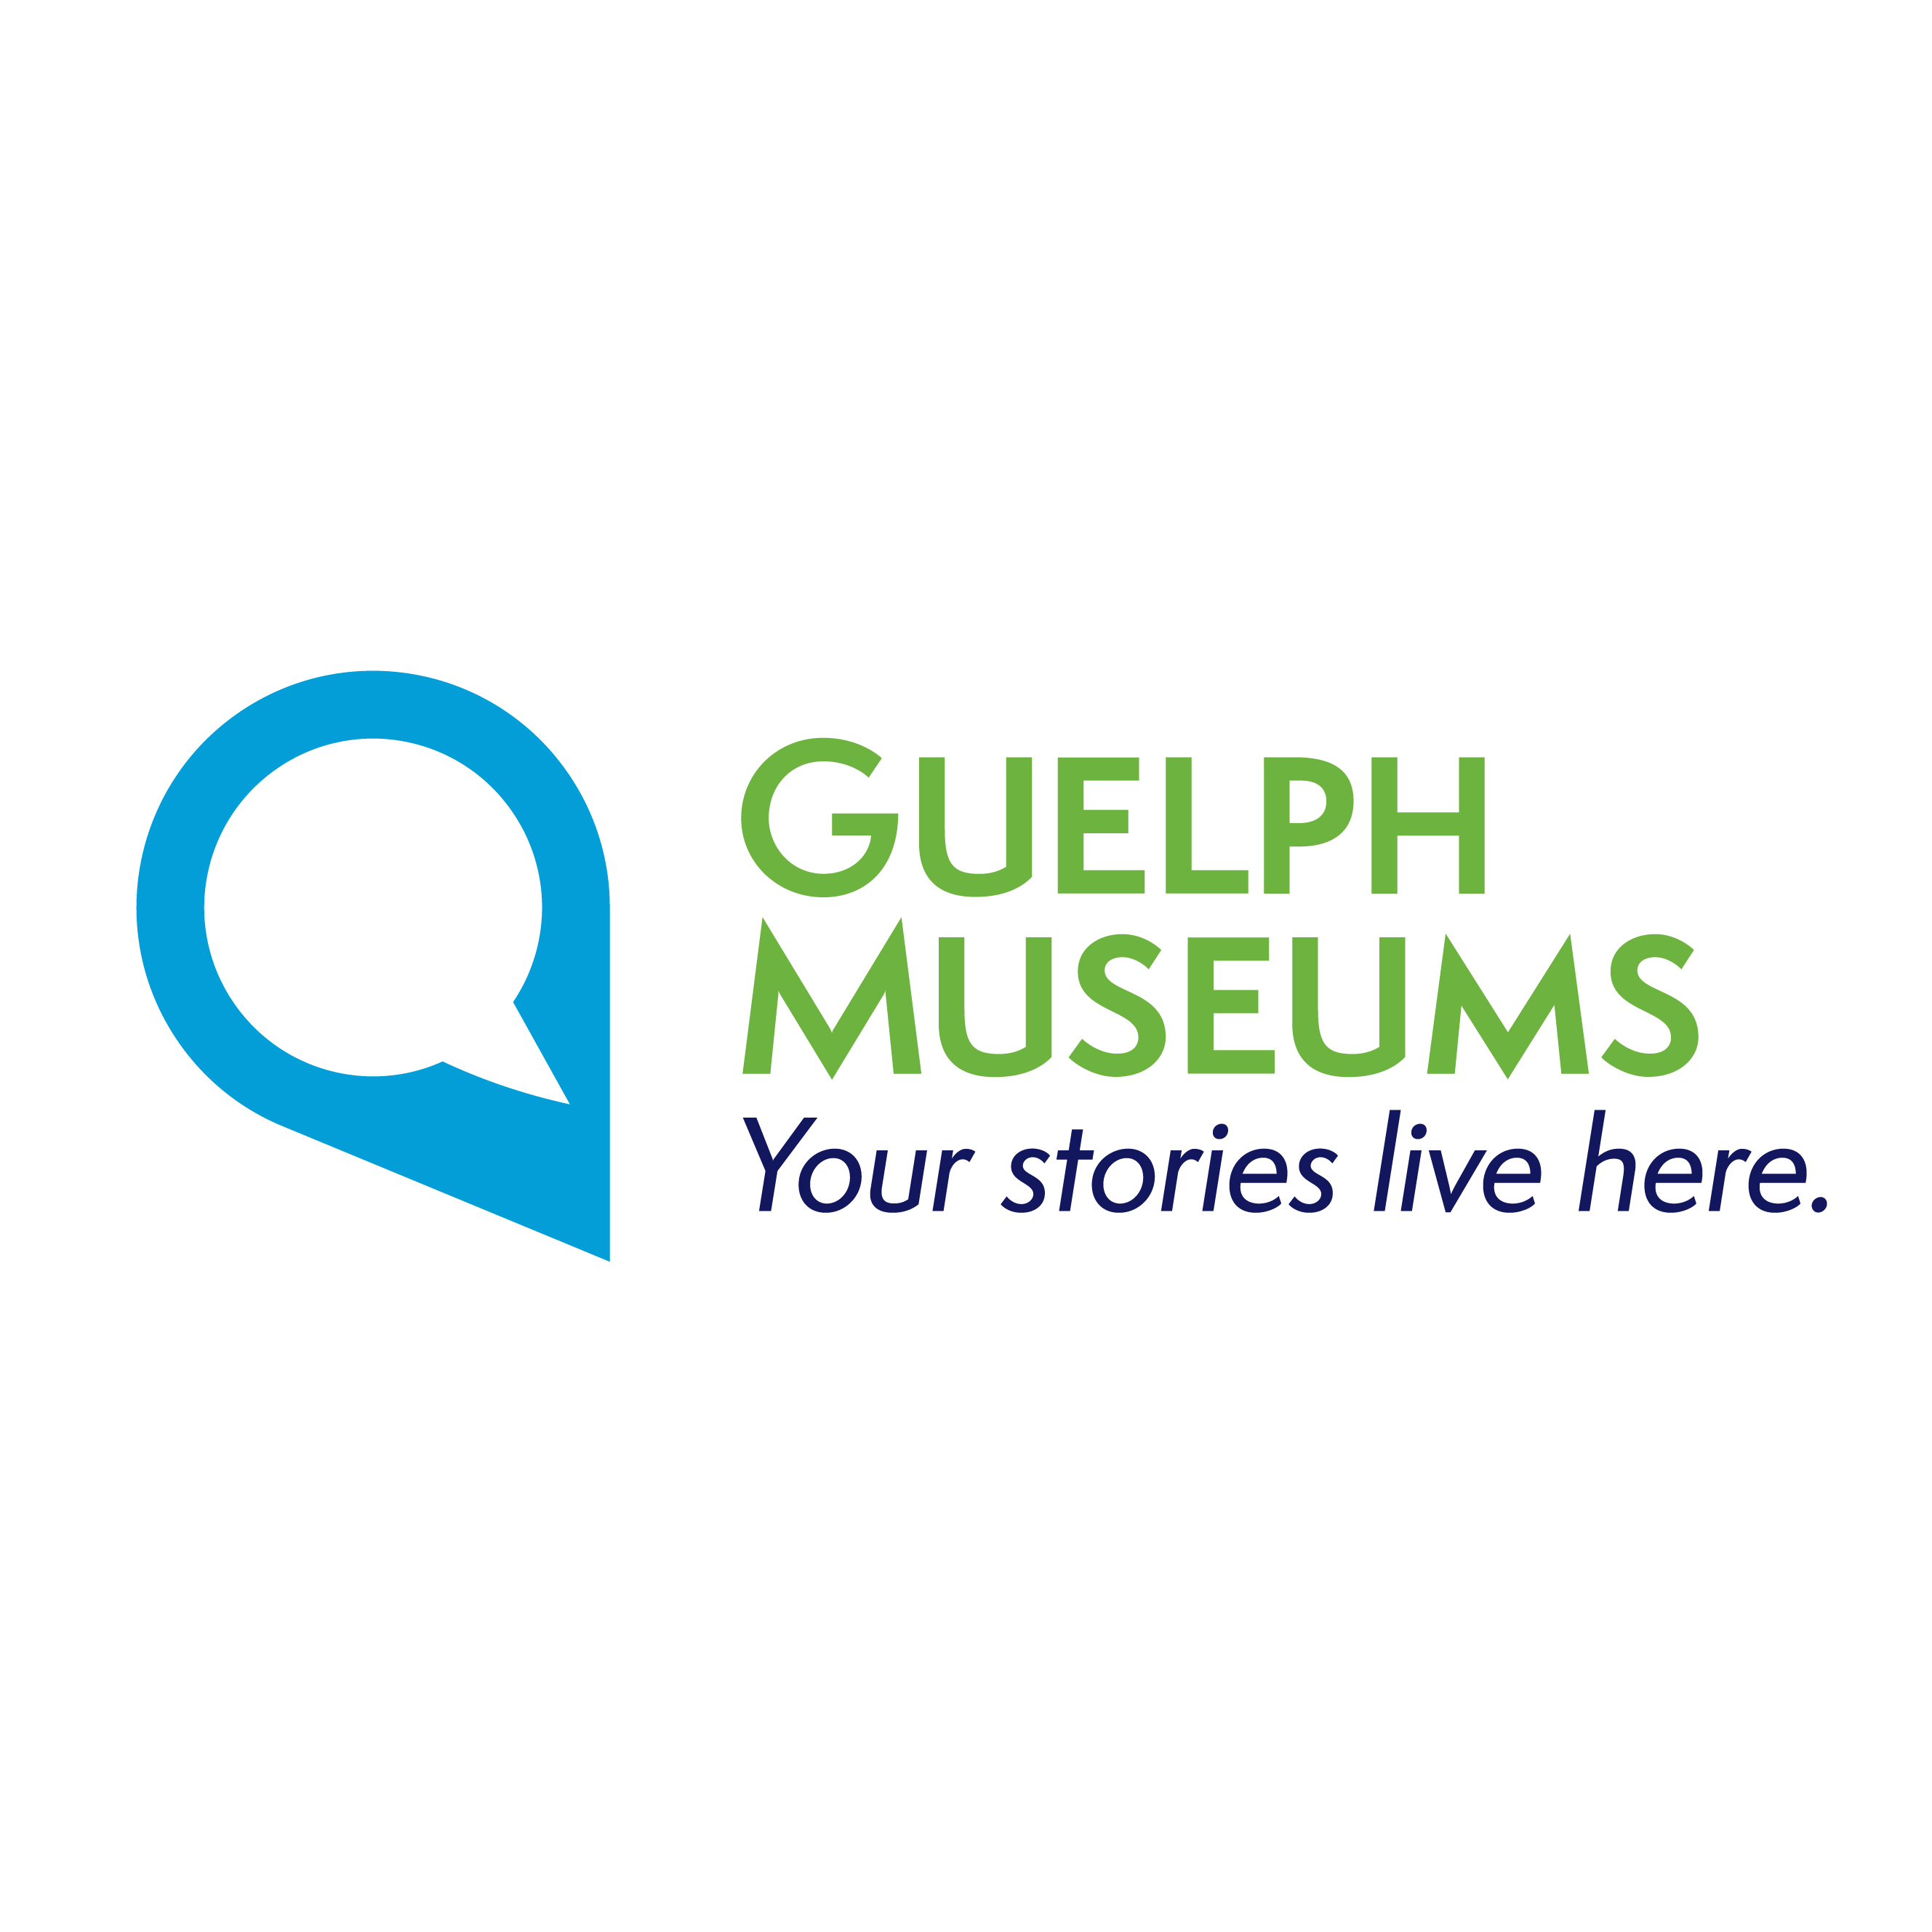 Guelph Museums